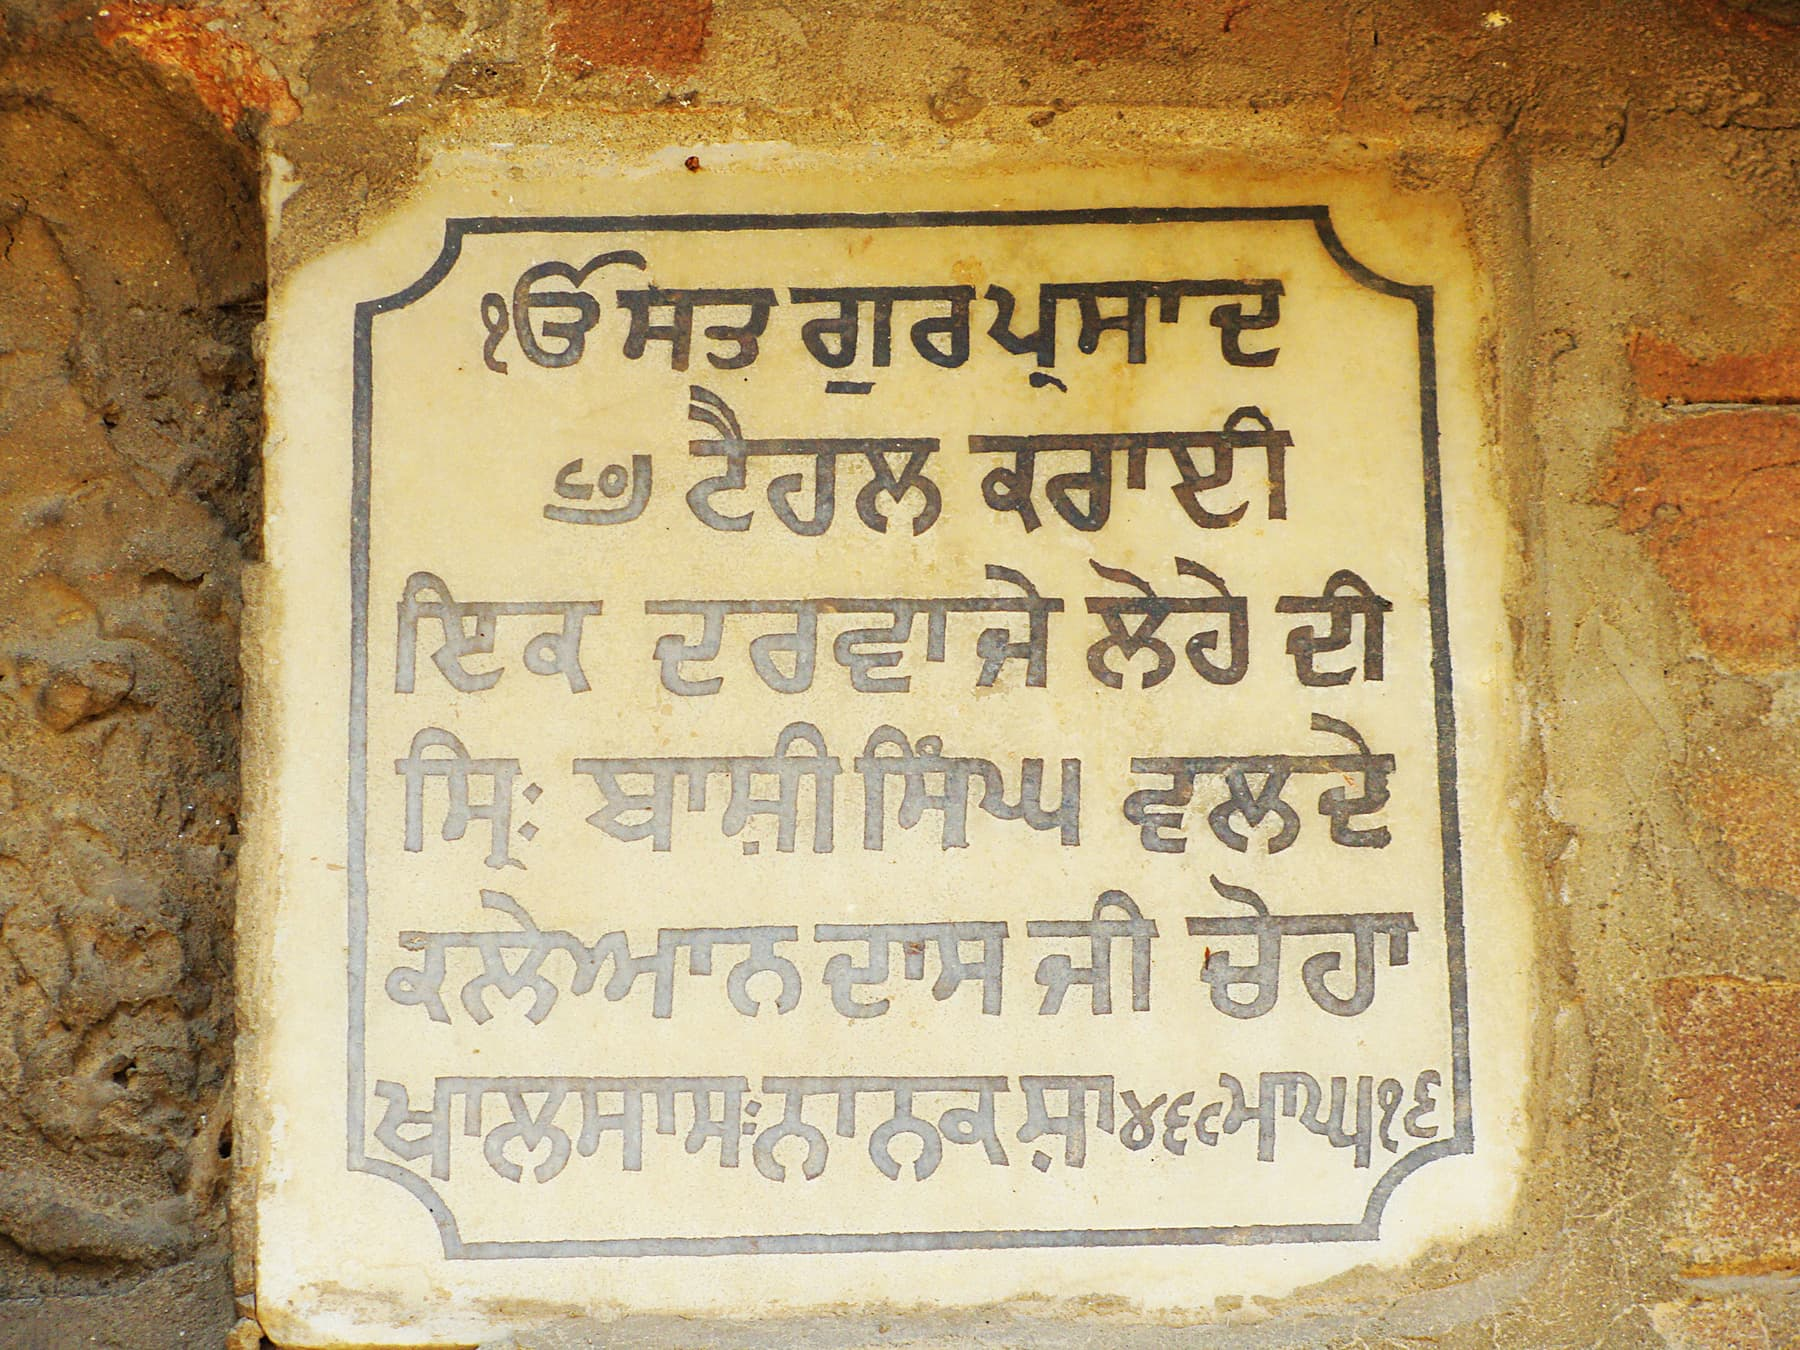 Gurmukhi inscriptions on the eastern wall.